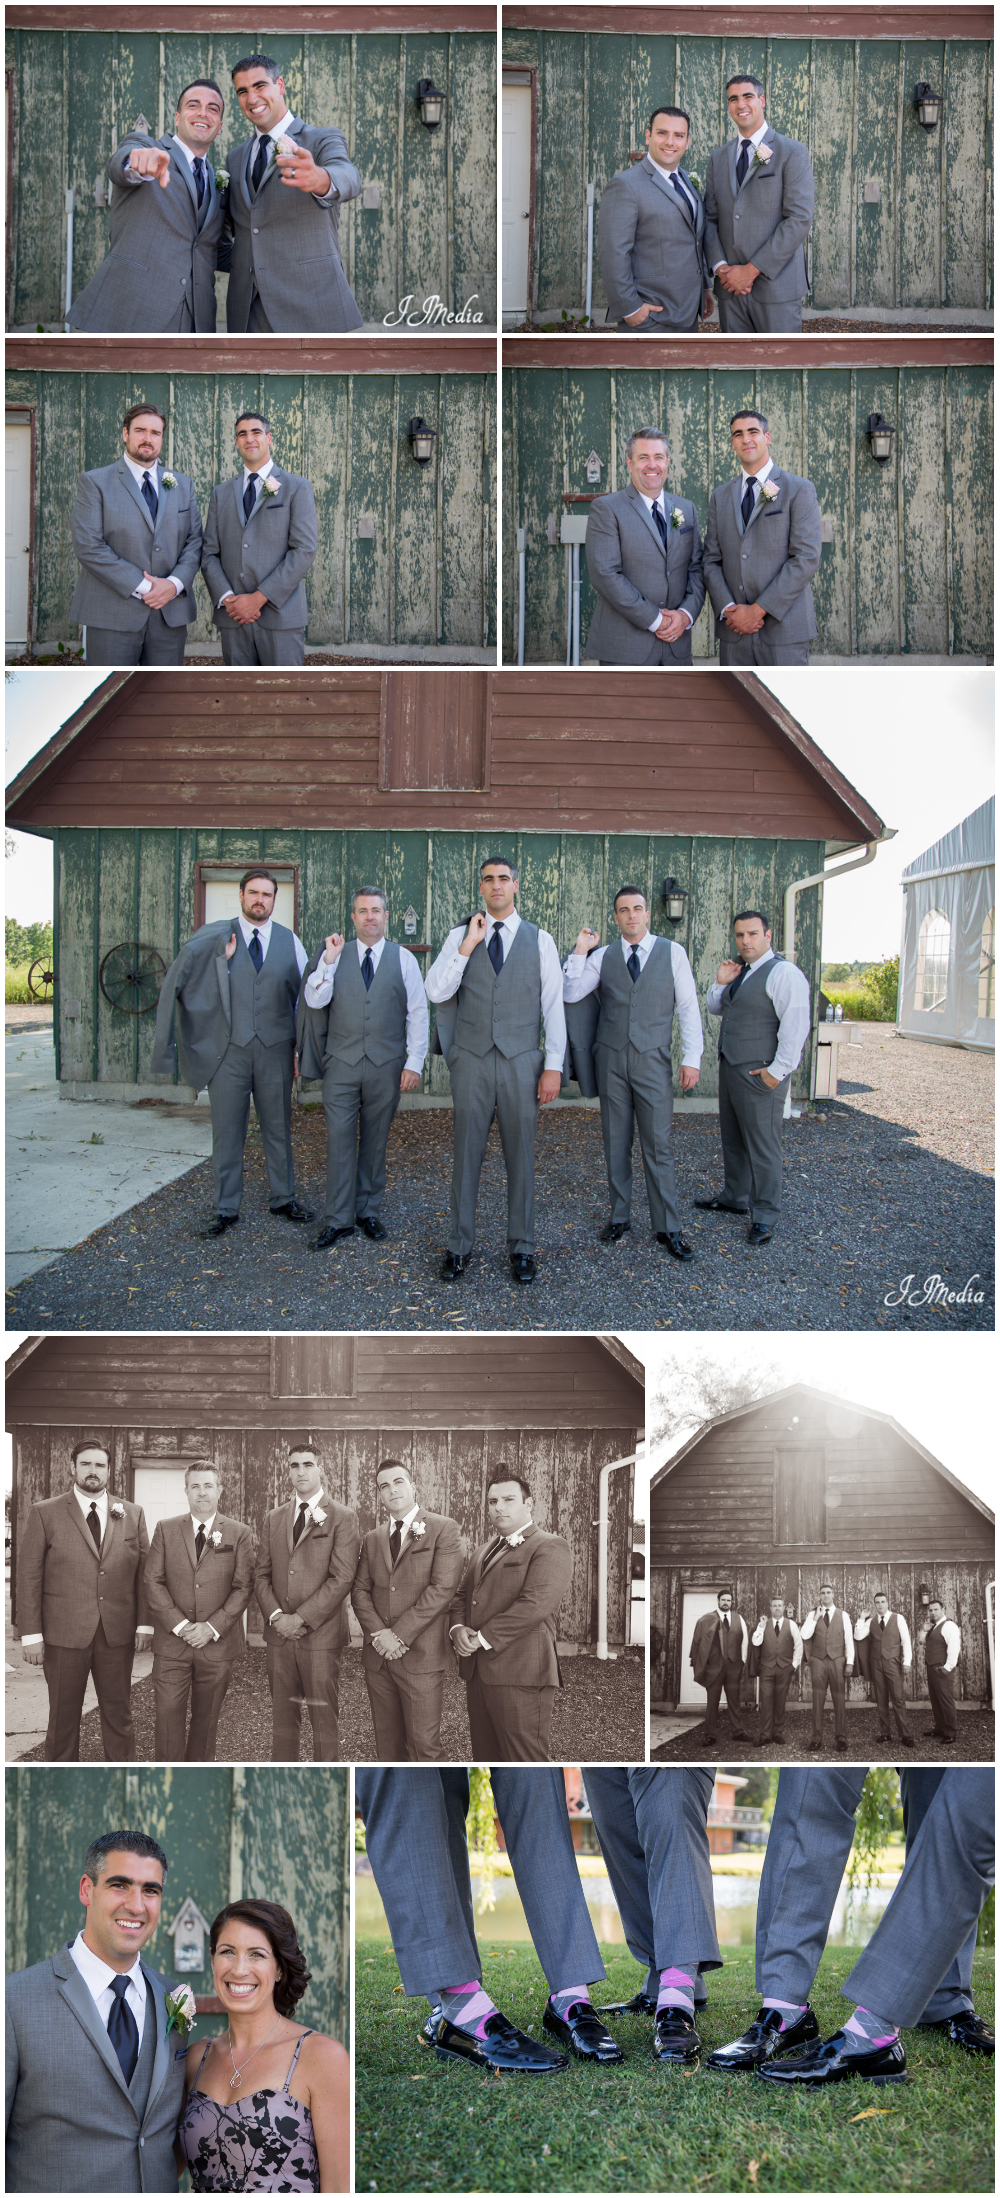 Willow_Springs_Winery_Wedding_JJMedia-7